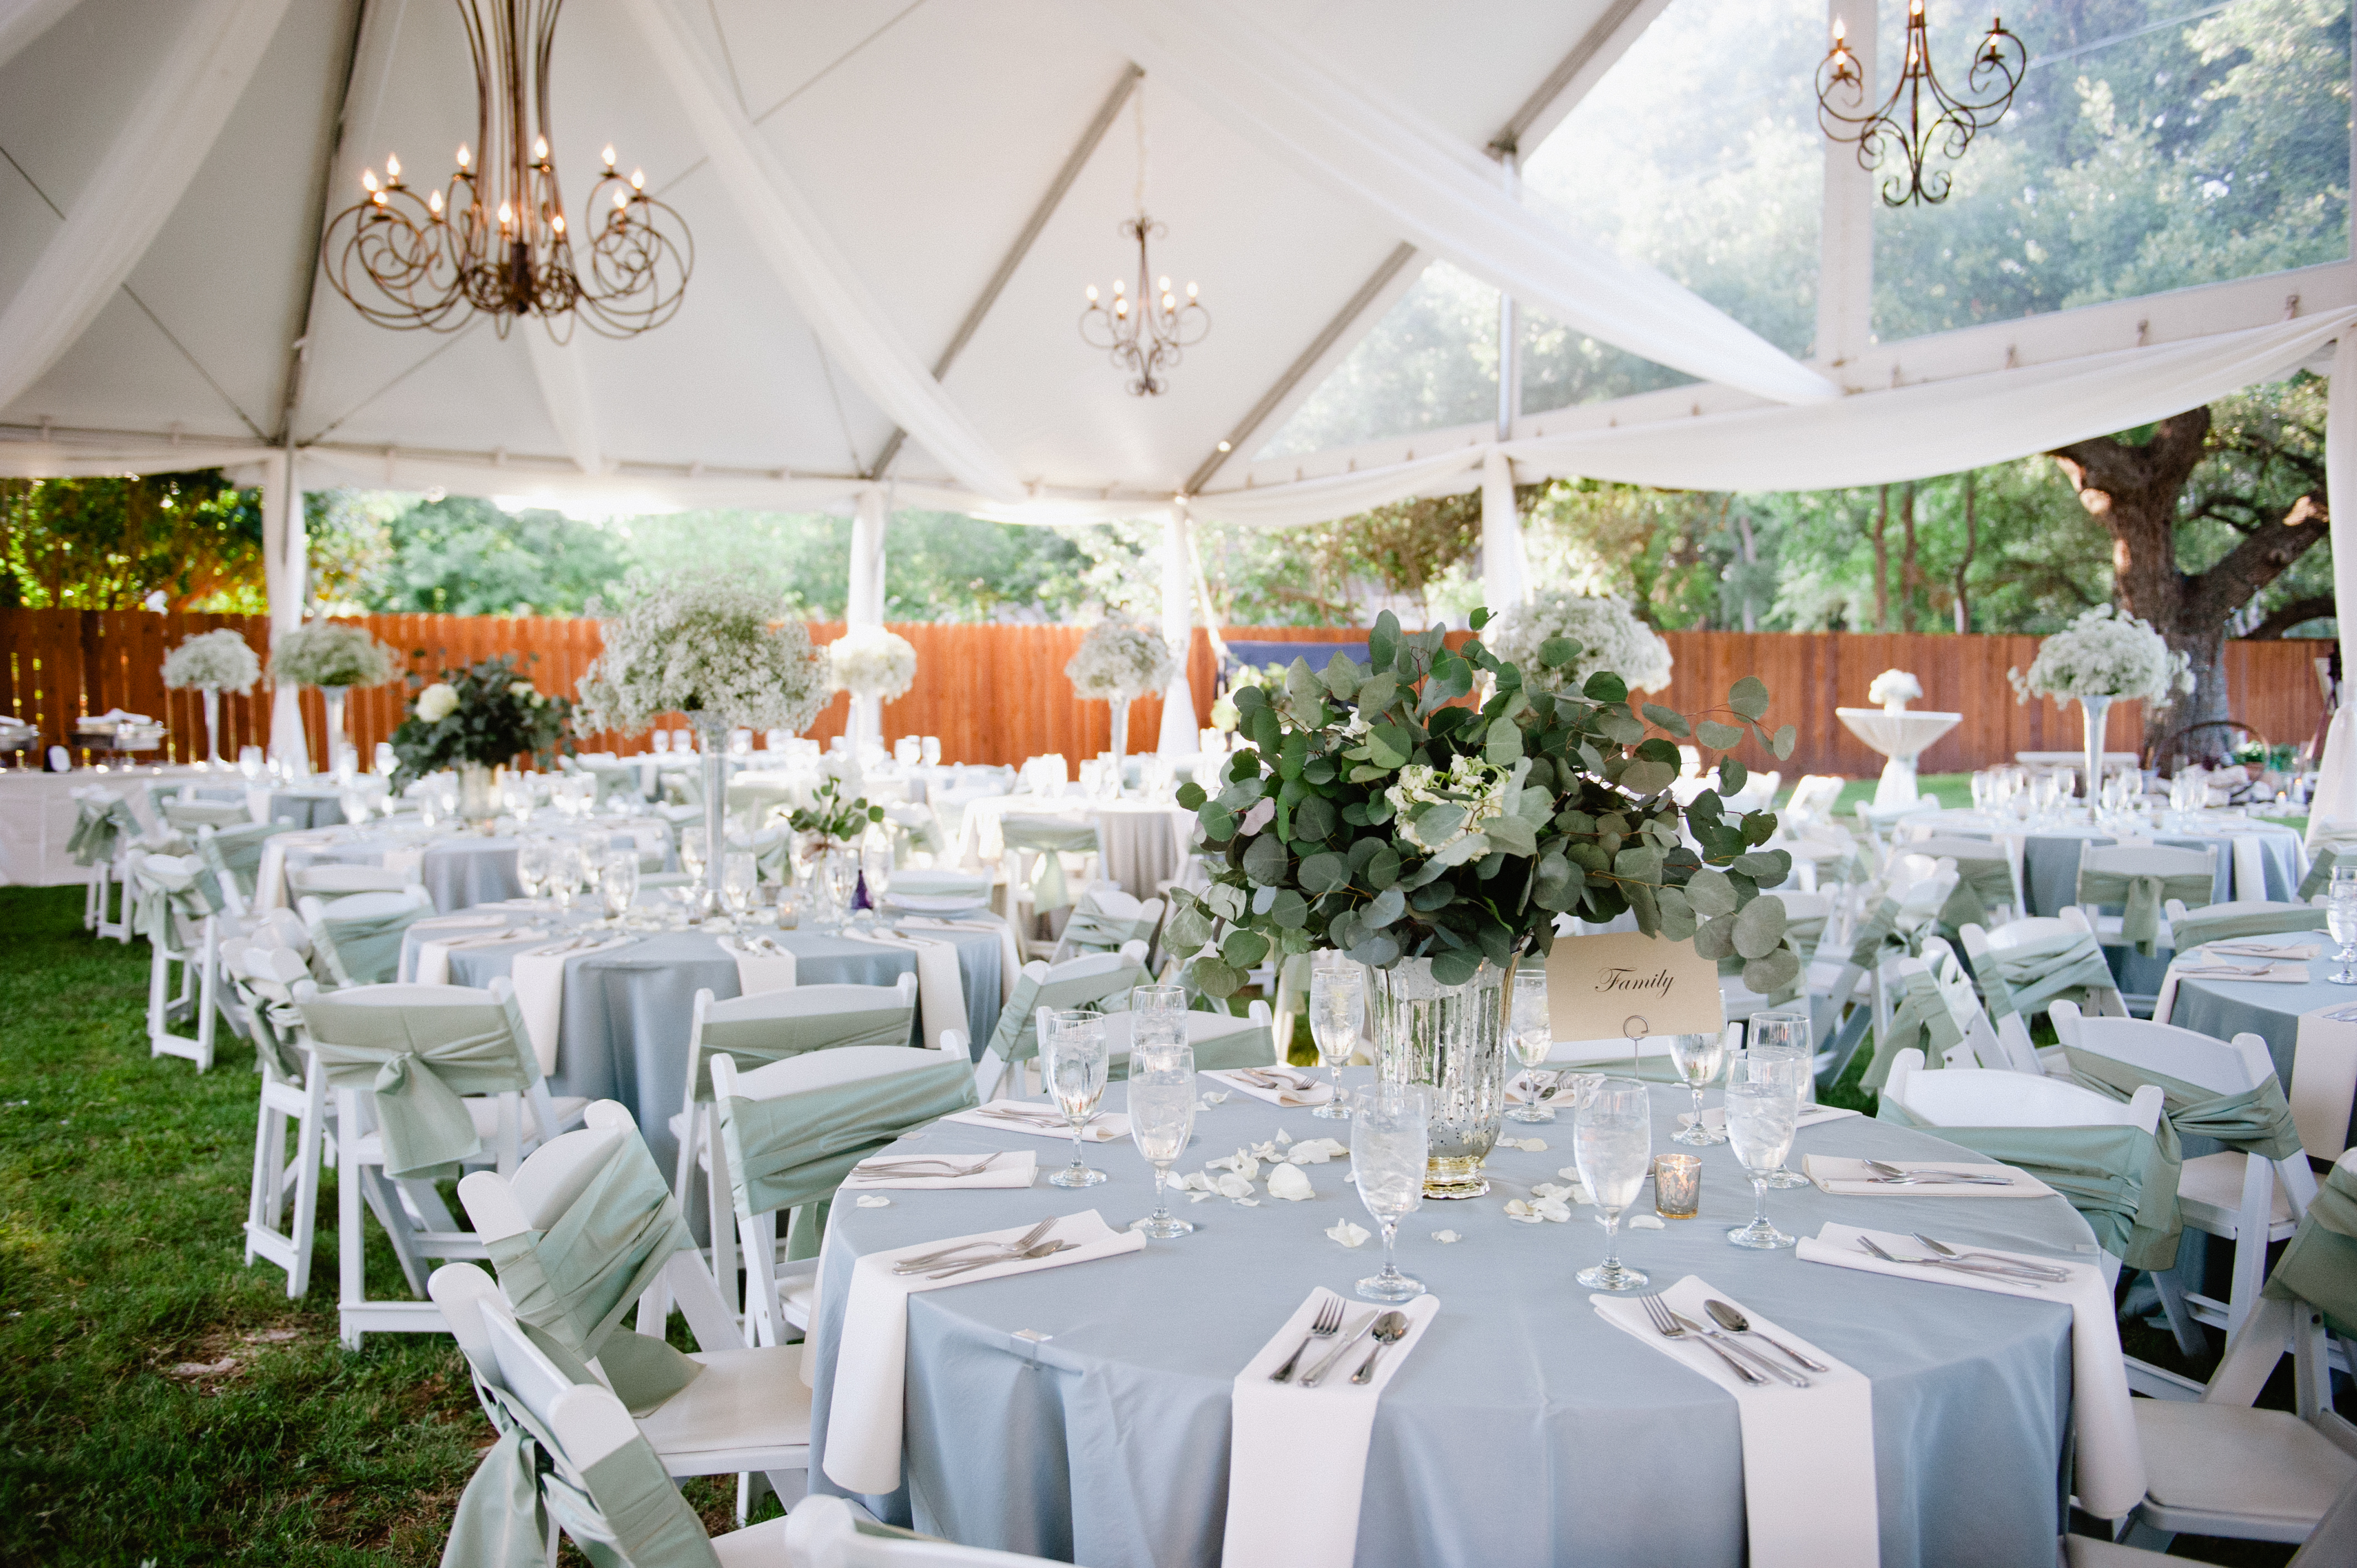 Light Blue and White Outdoor Reception Decor - Elizabeth Anne ...